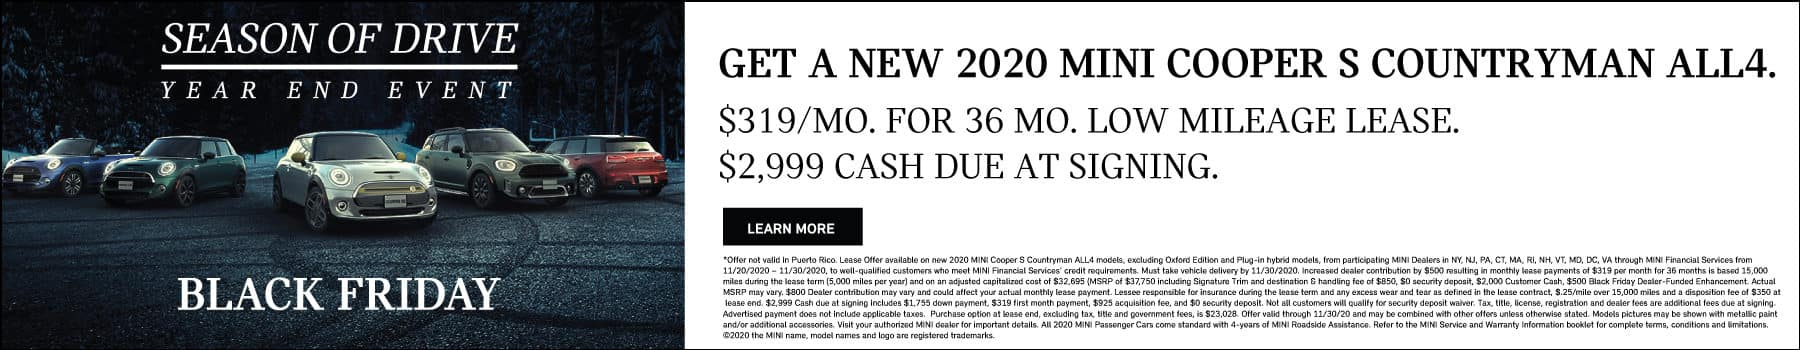 GET A NEW MINI COOPER S COUNTRYMAN ALL4. $319 per month for 36 low mileage lease. $2999 cash due at signing